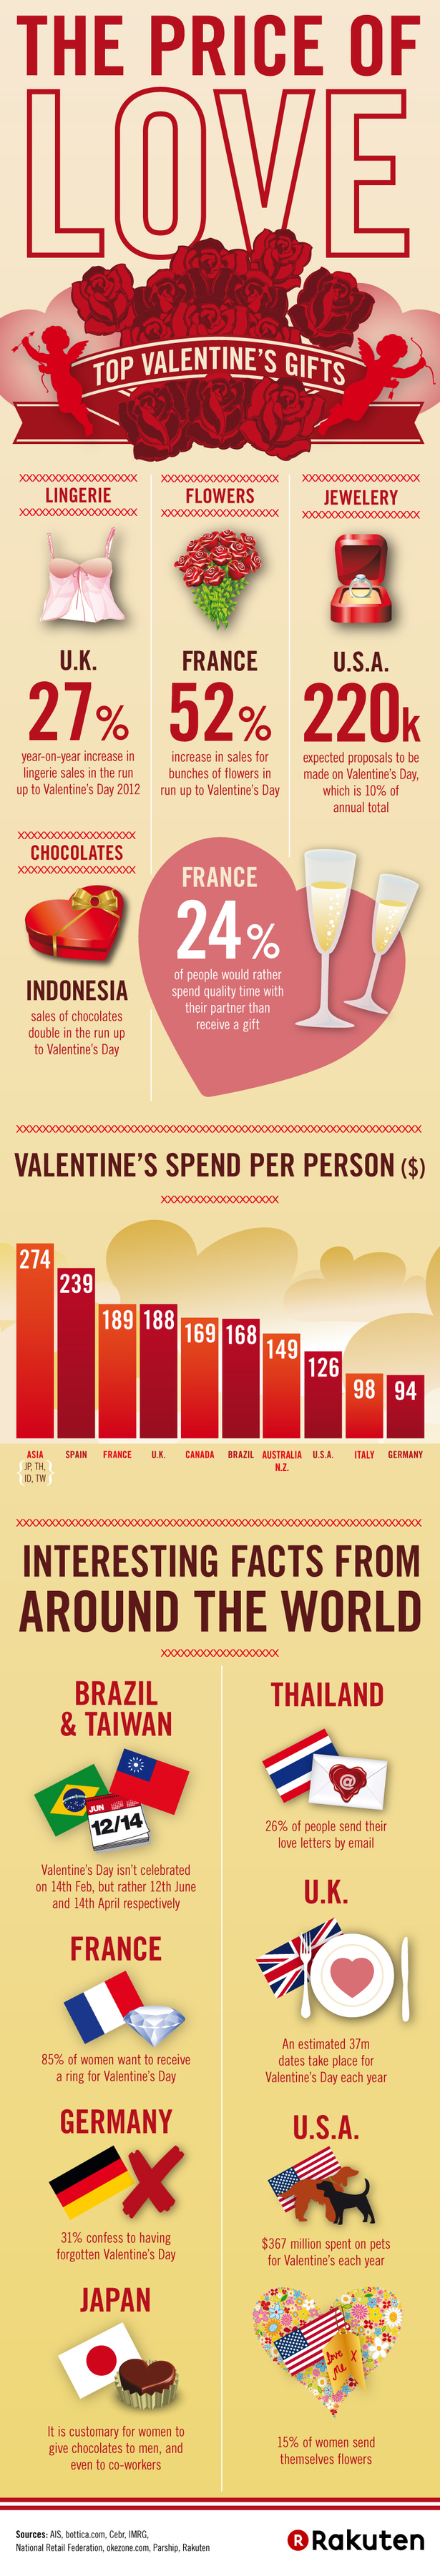 Valentines Day in Numbers 2013 - Infographic - OnlineAds.lt